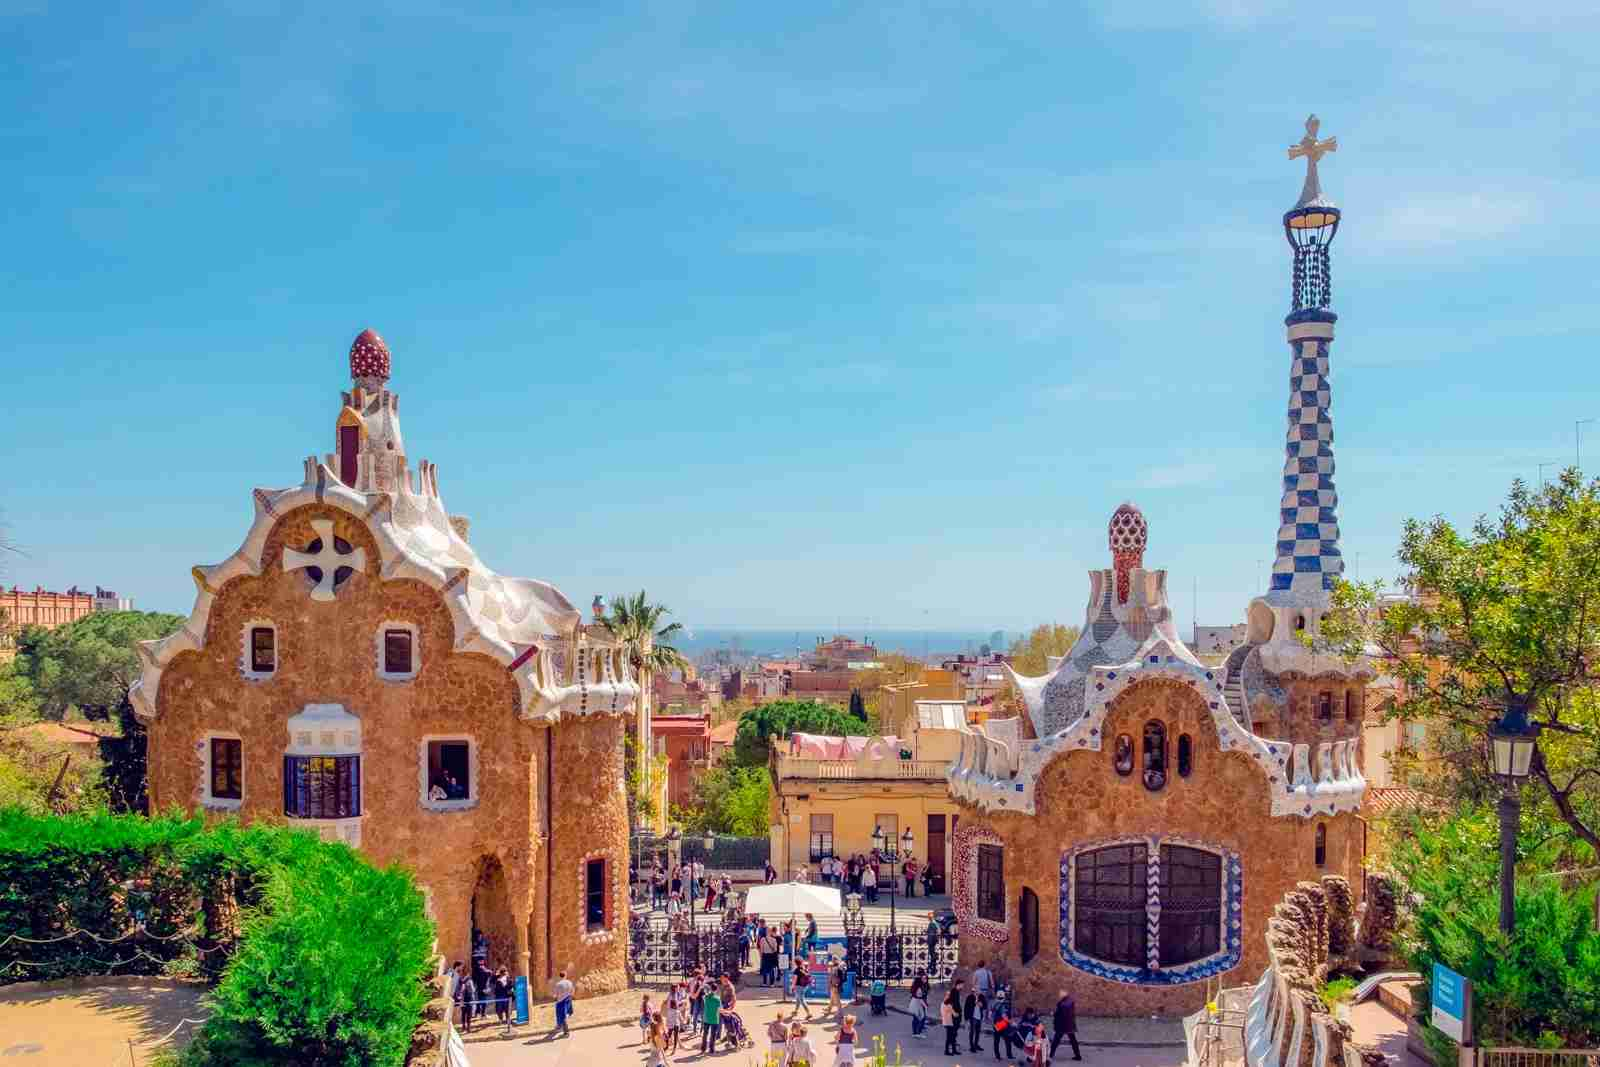 Park Güell, designed by Catalan architect Antoni Gaudí. (Photo by Daniel Corneschi/Unsplash)